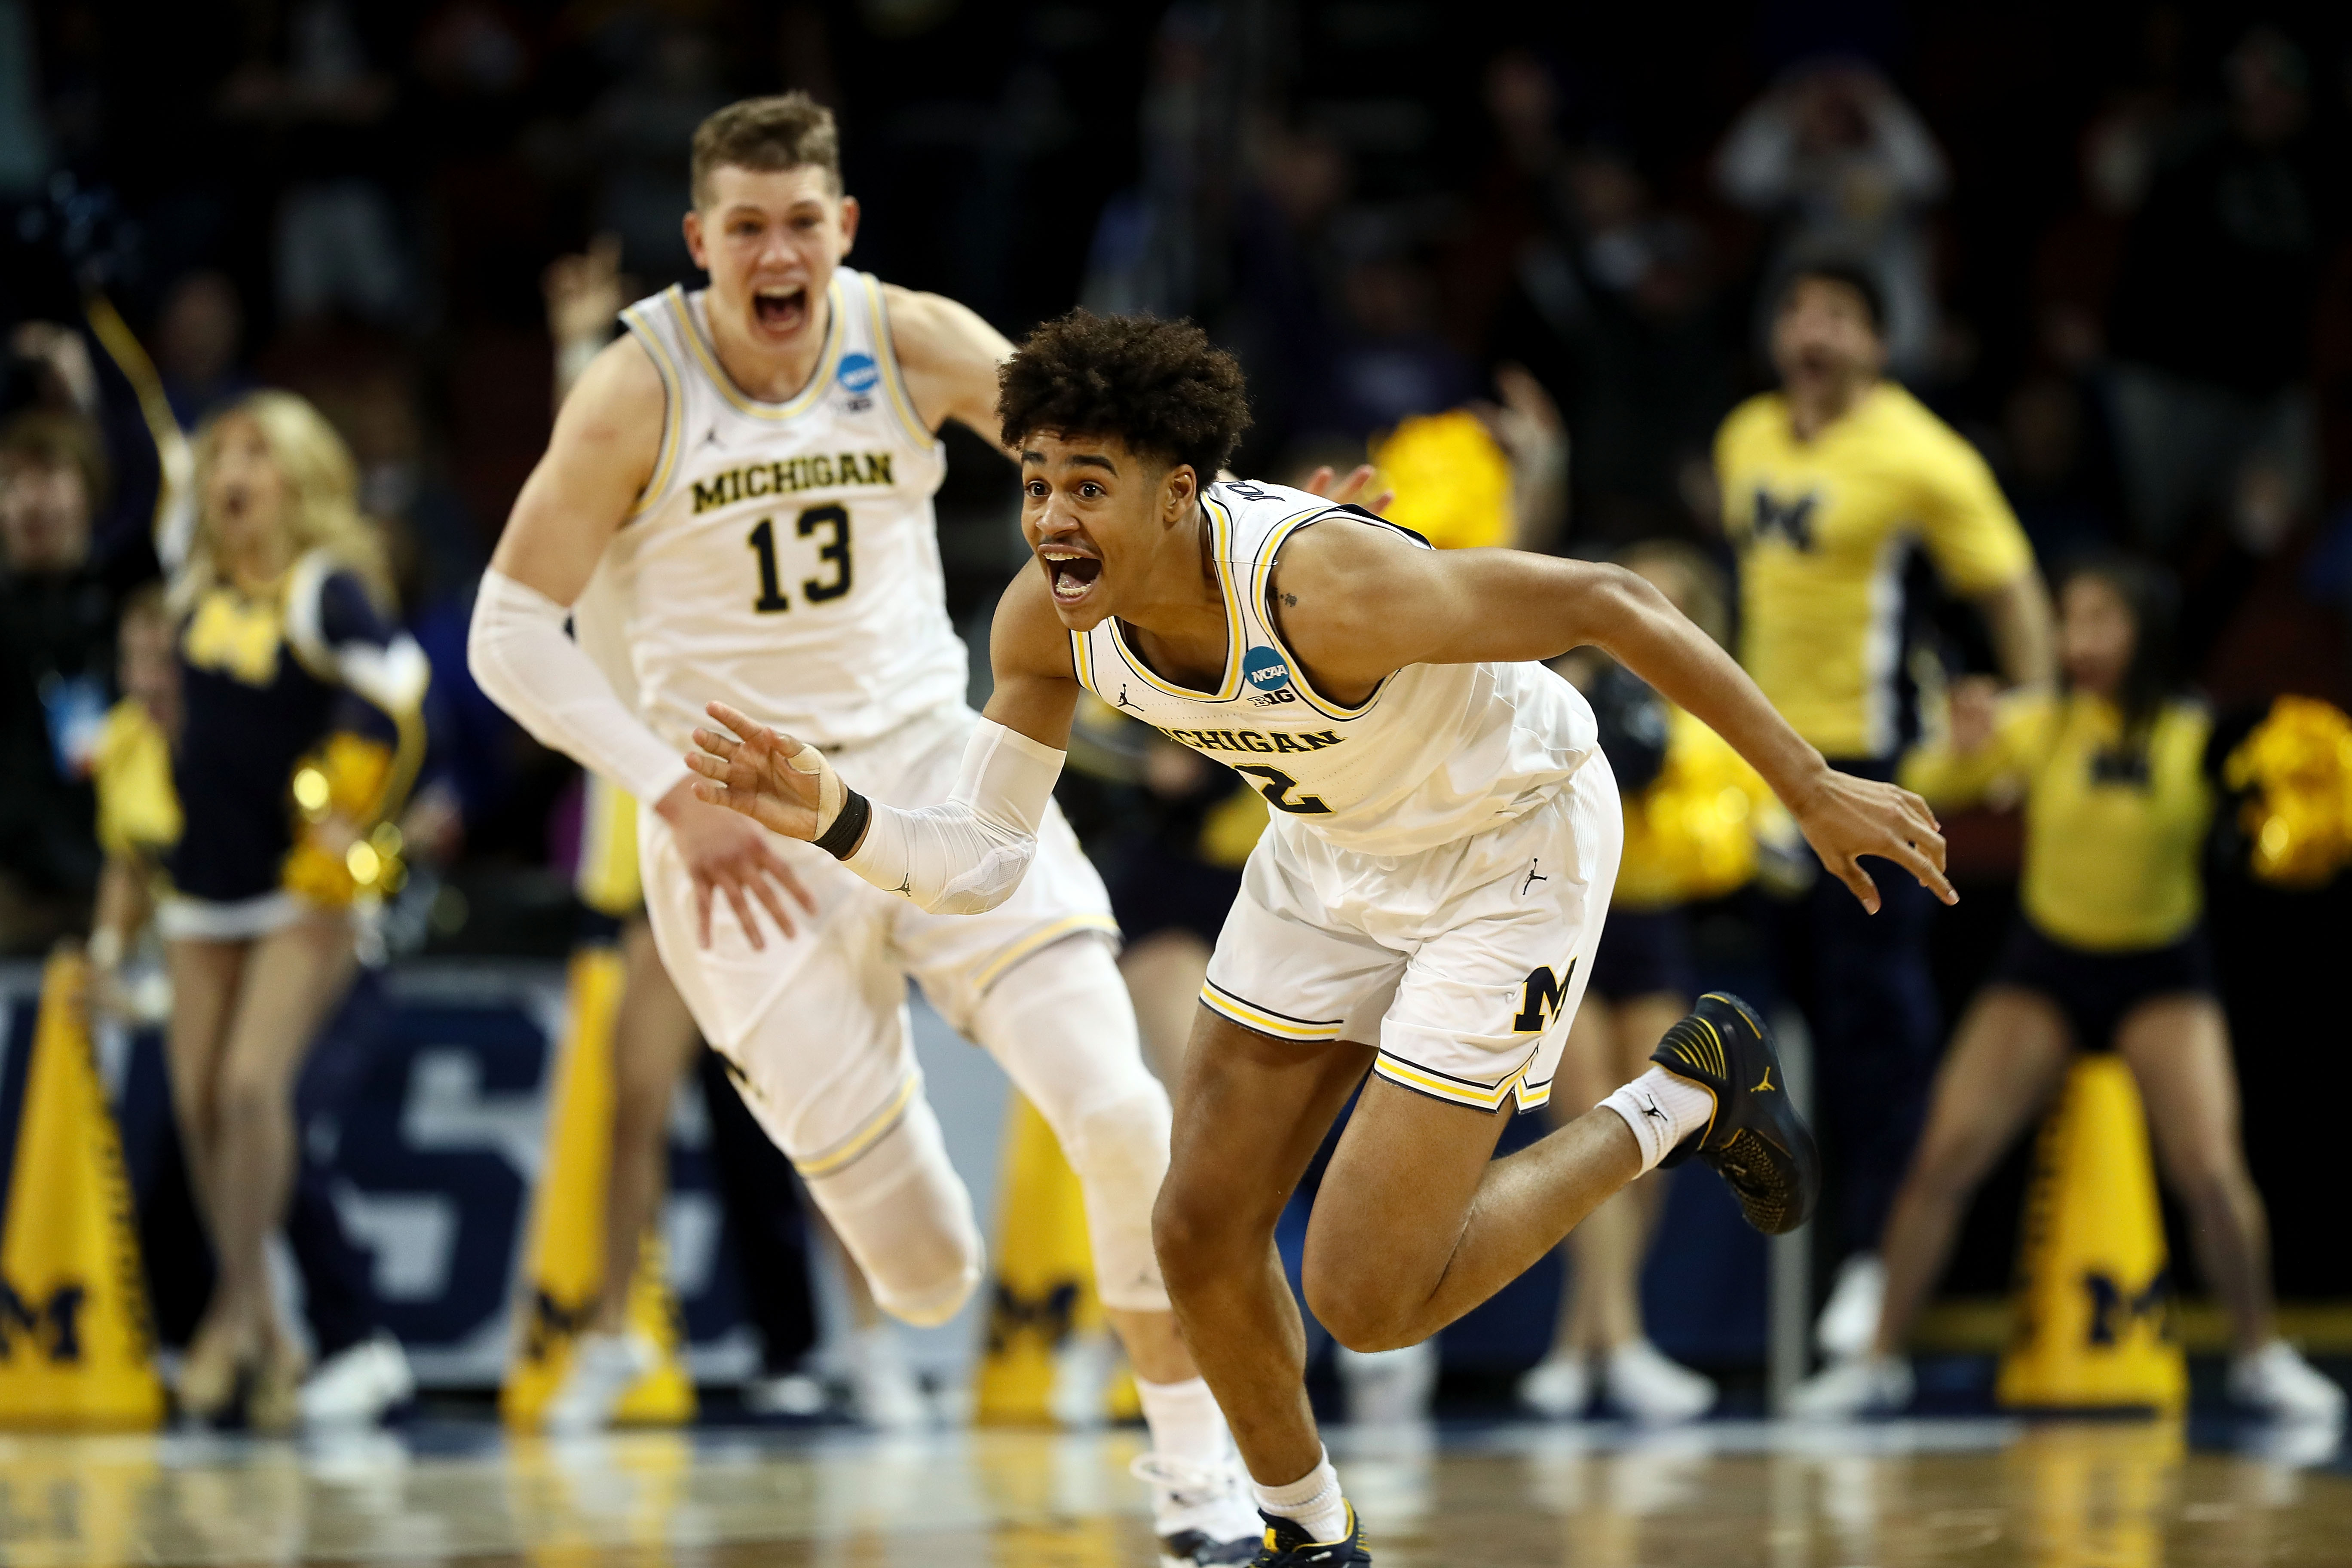 Michigan Basketball 3 takeaways from the magical win overMichigan Basketball